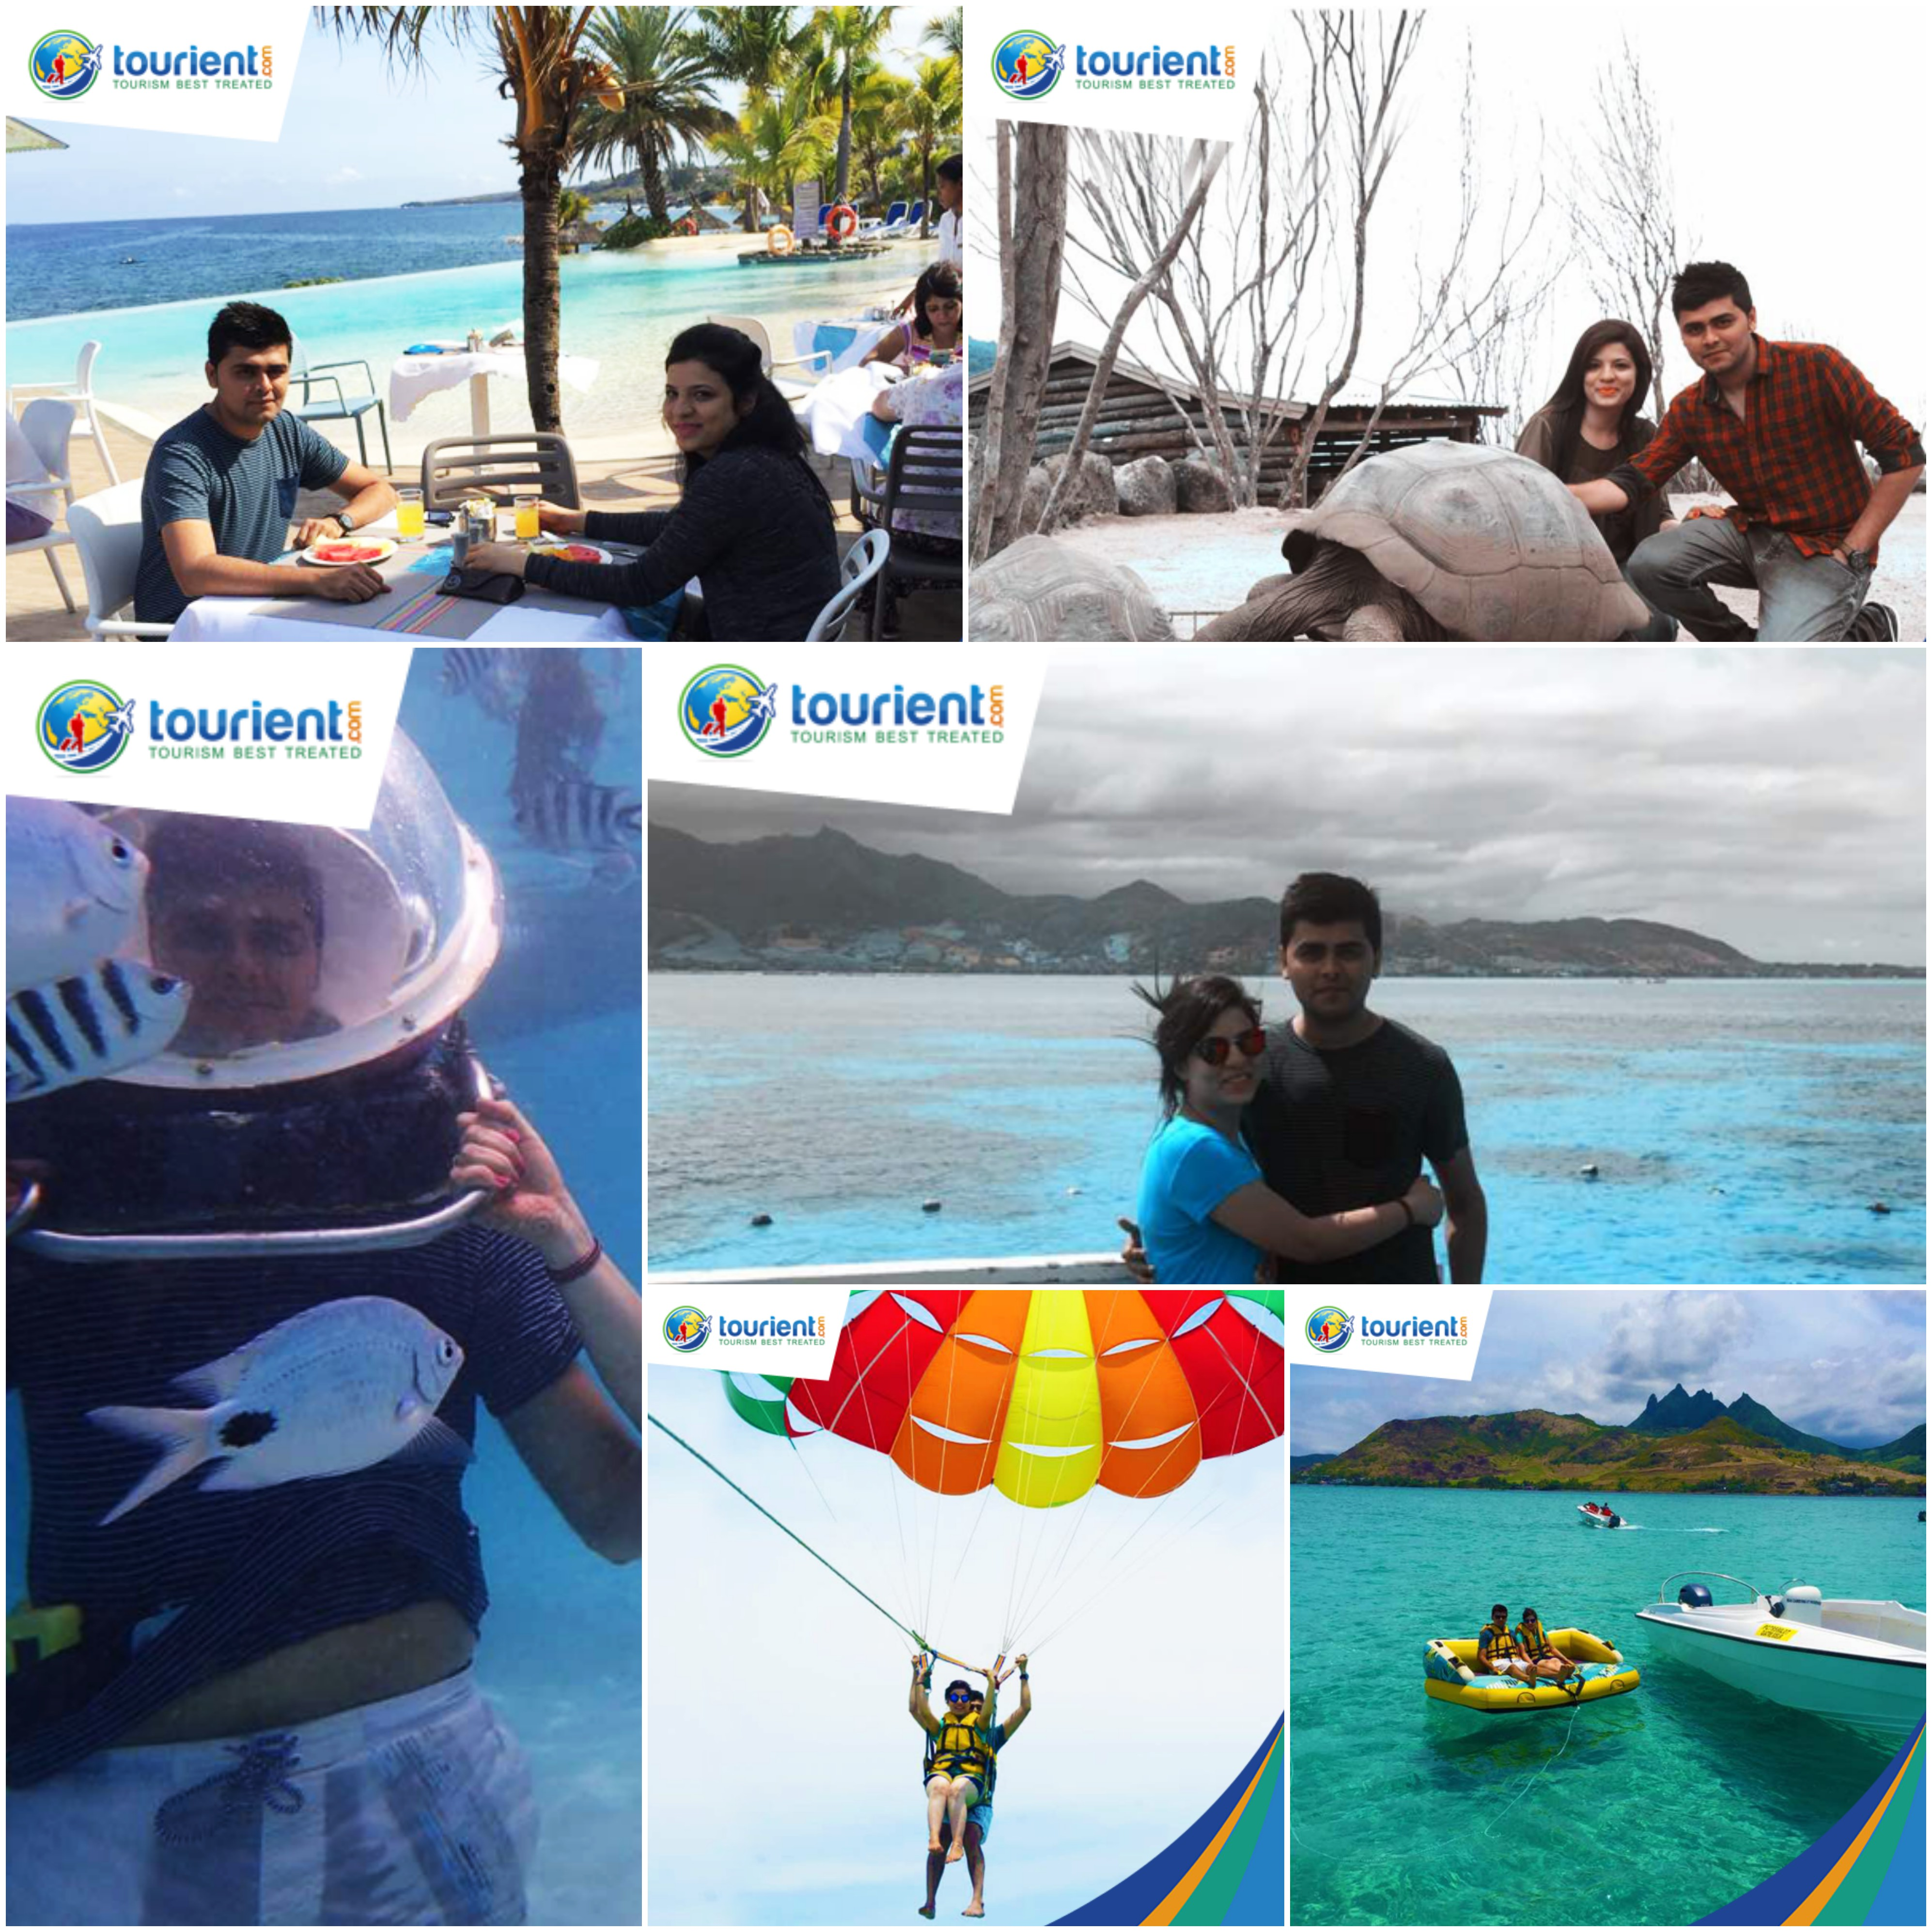 Glimpses of the Mauritius Honeymoon Package availed By Mr & Mrs. Gaulani.